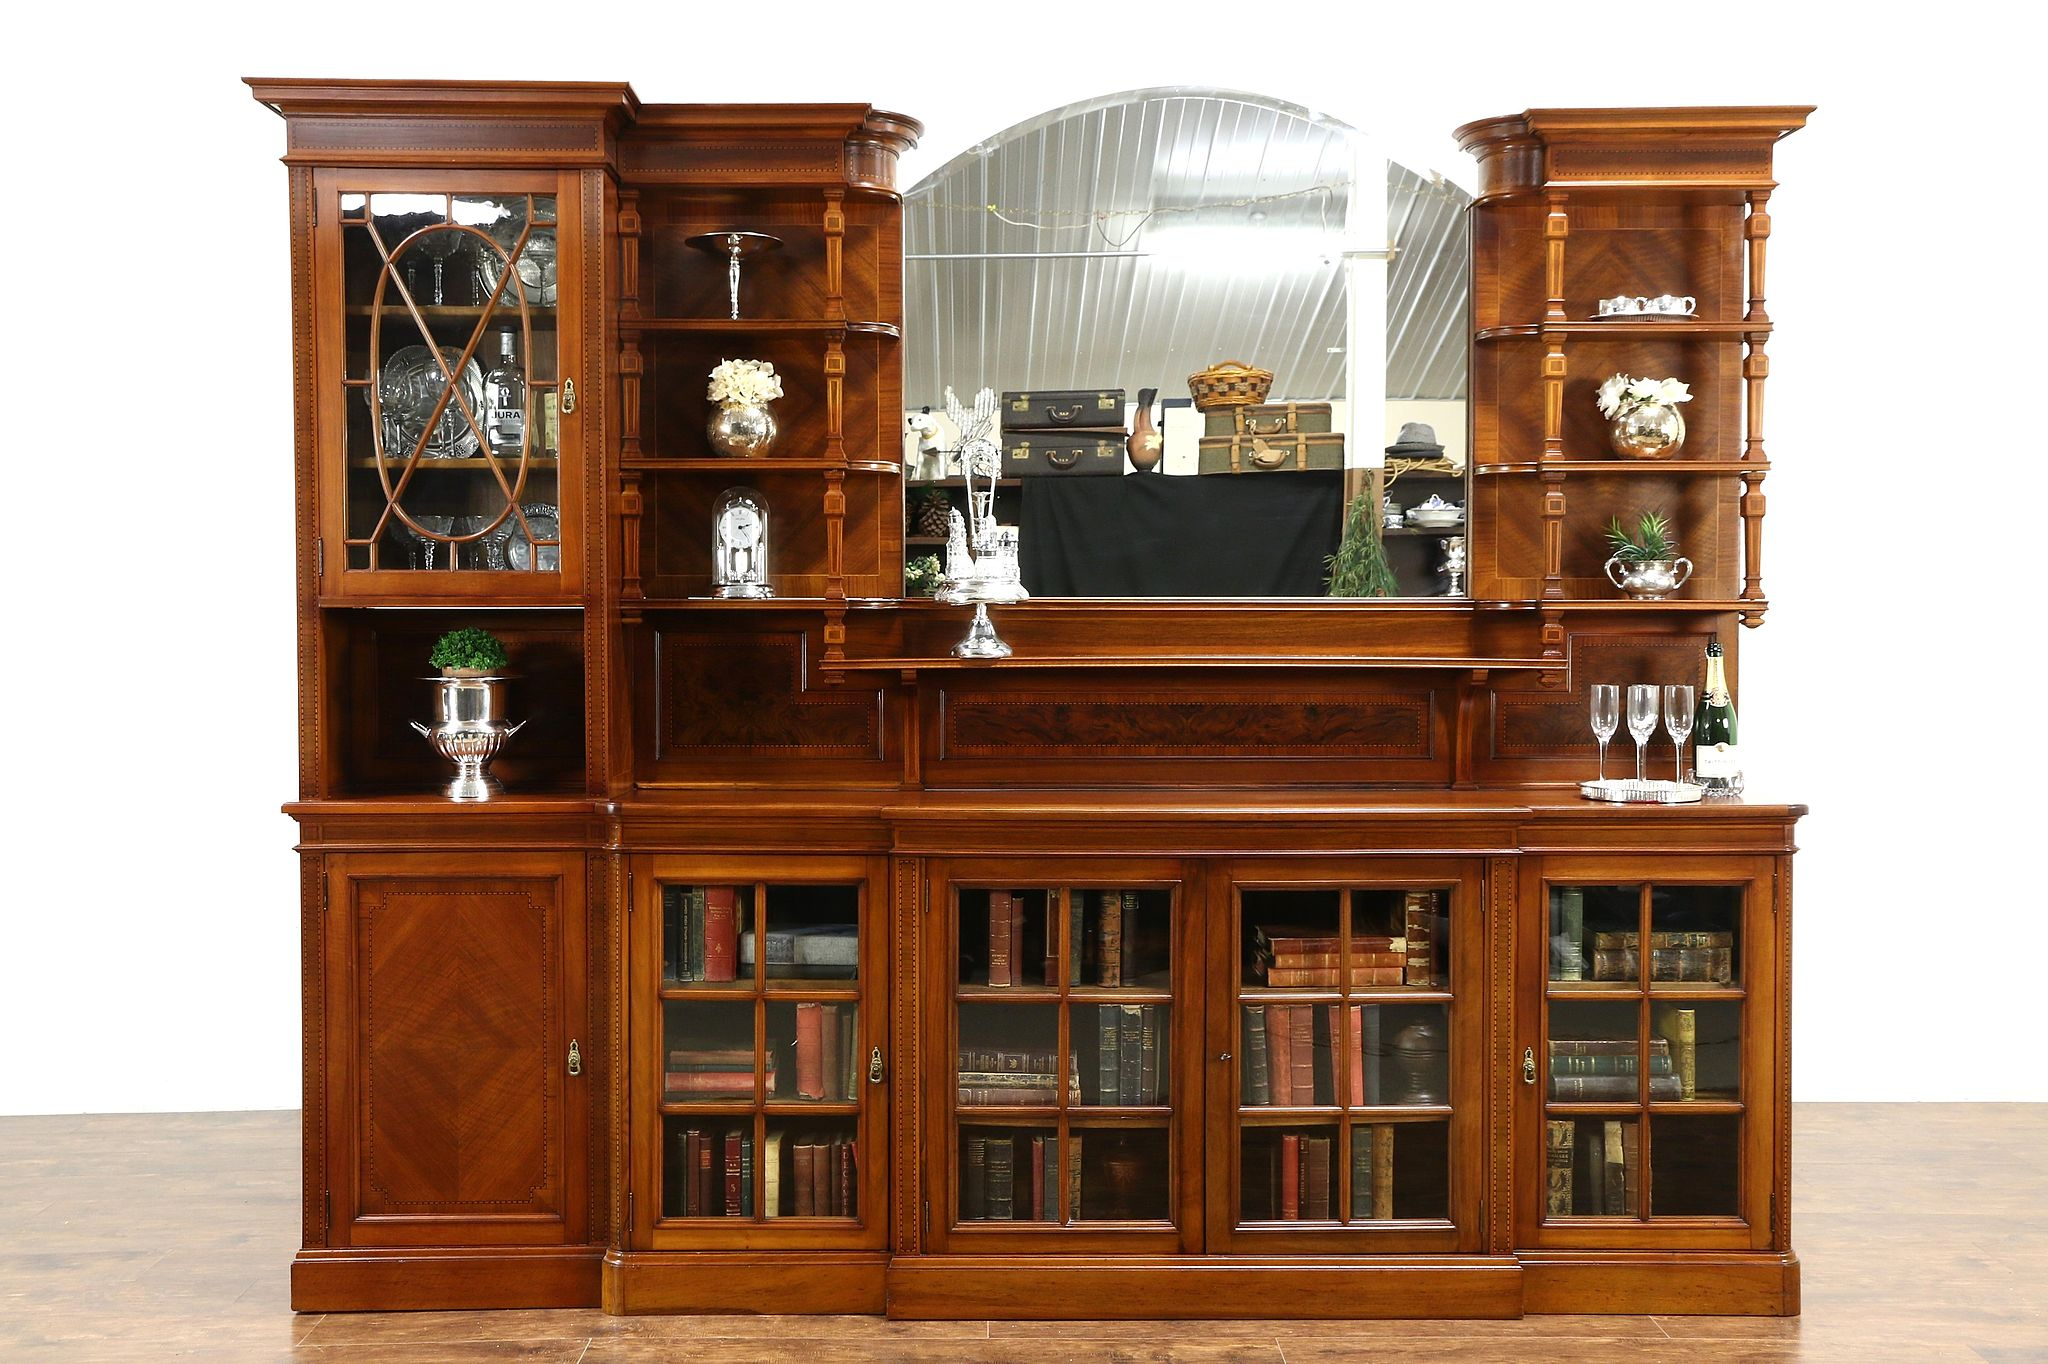 SOLD - Back Bar or Sideboard with China Cabinet, 1890's English ...